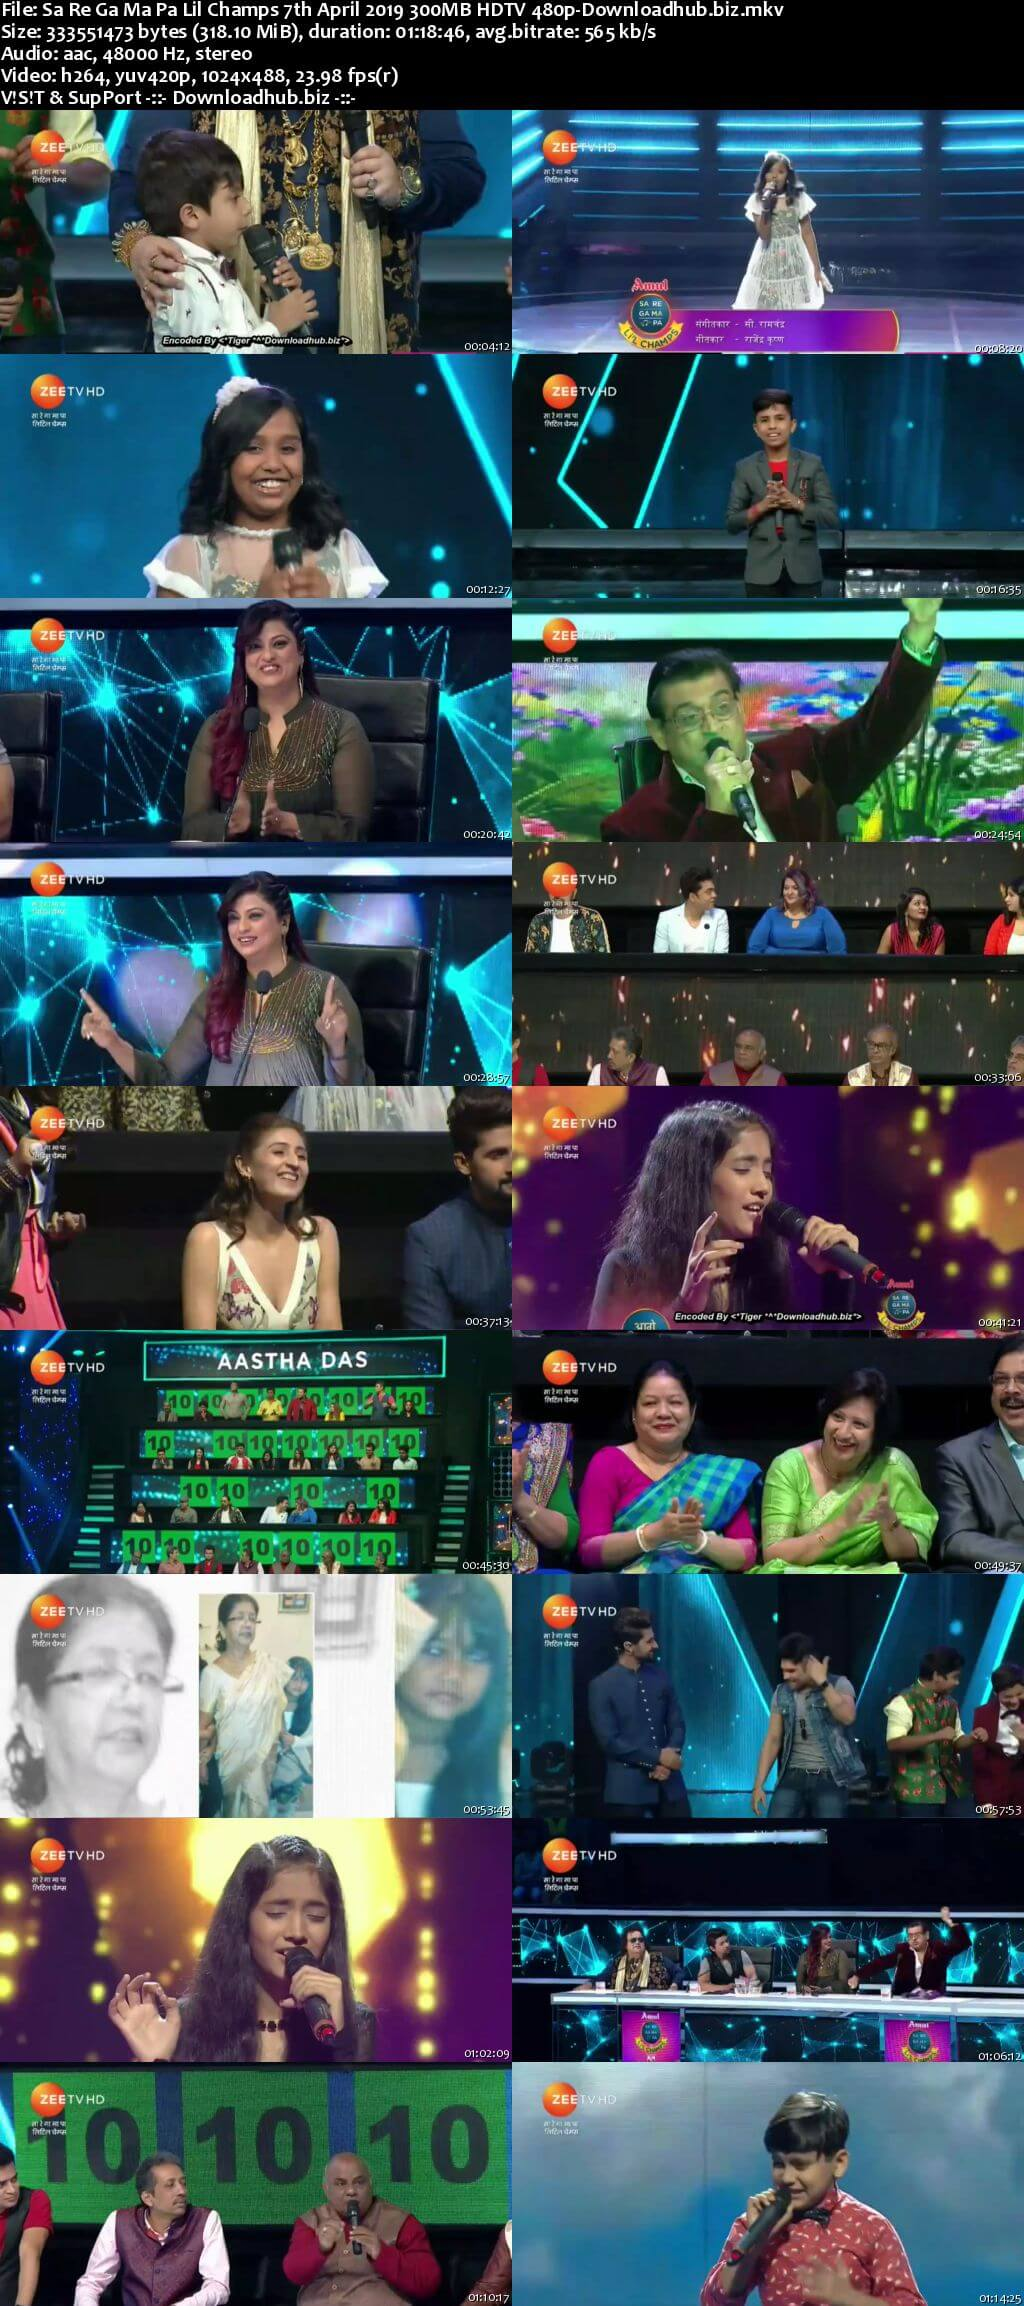 Sa Re Ga Ma Pa Lil Champs 07 April 2019 Episode 17 HDTV 480p